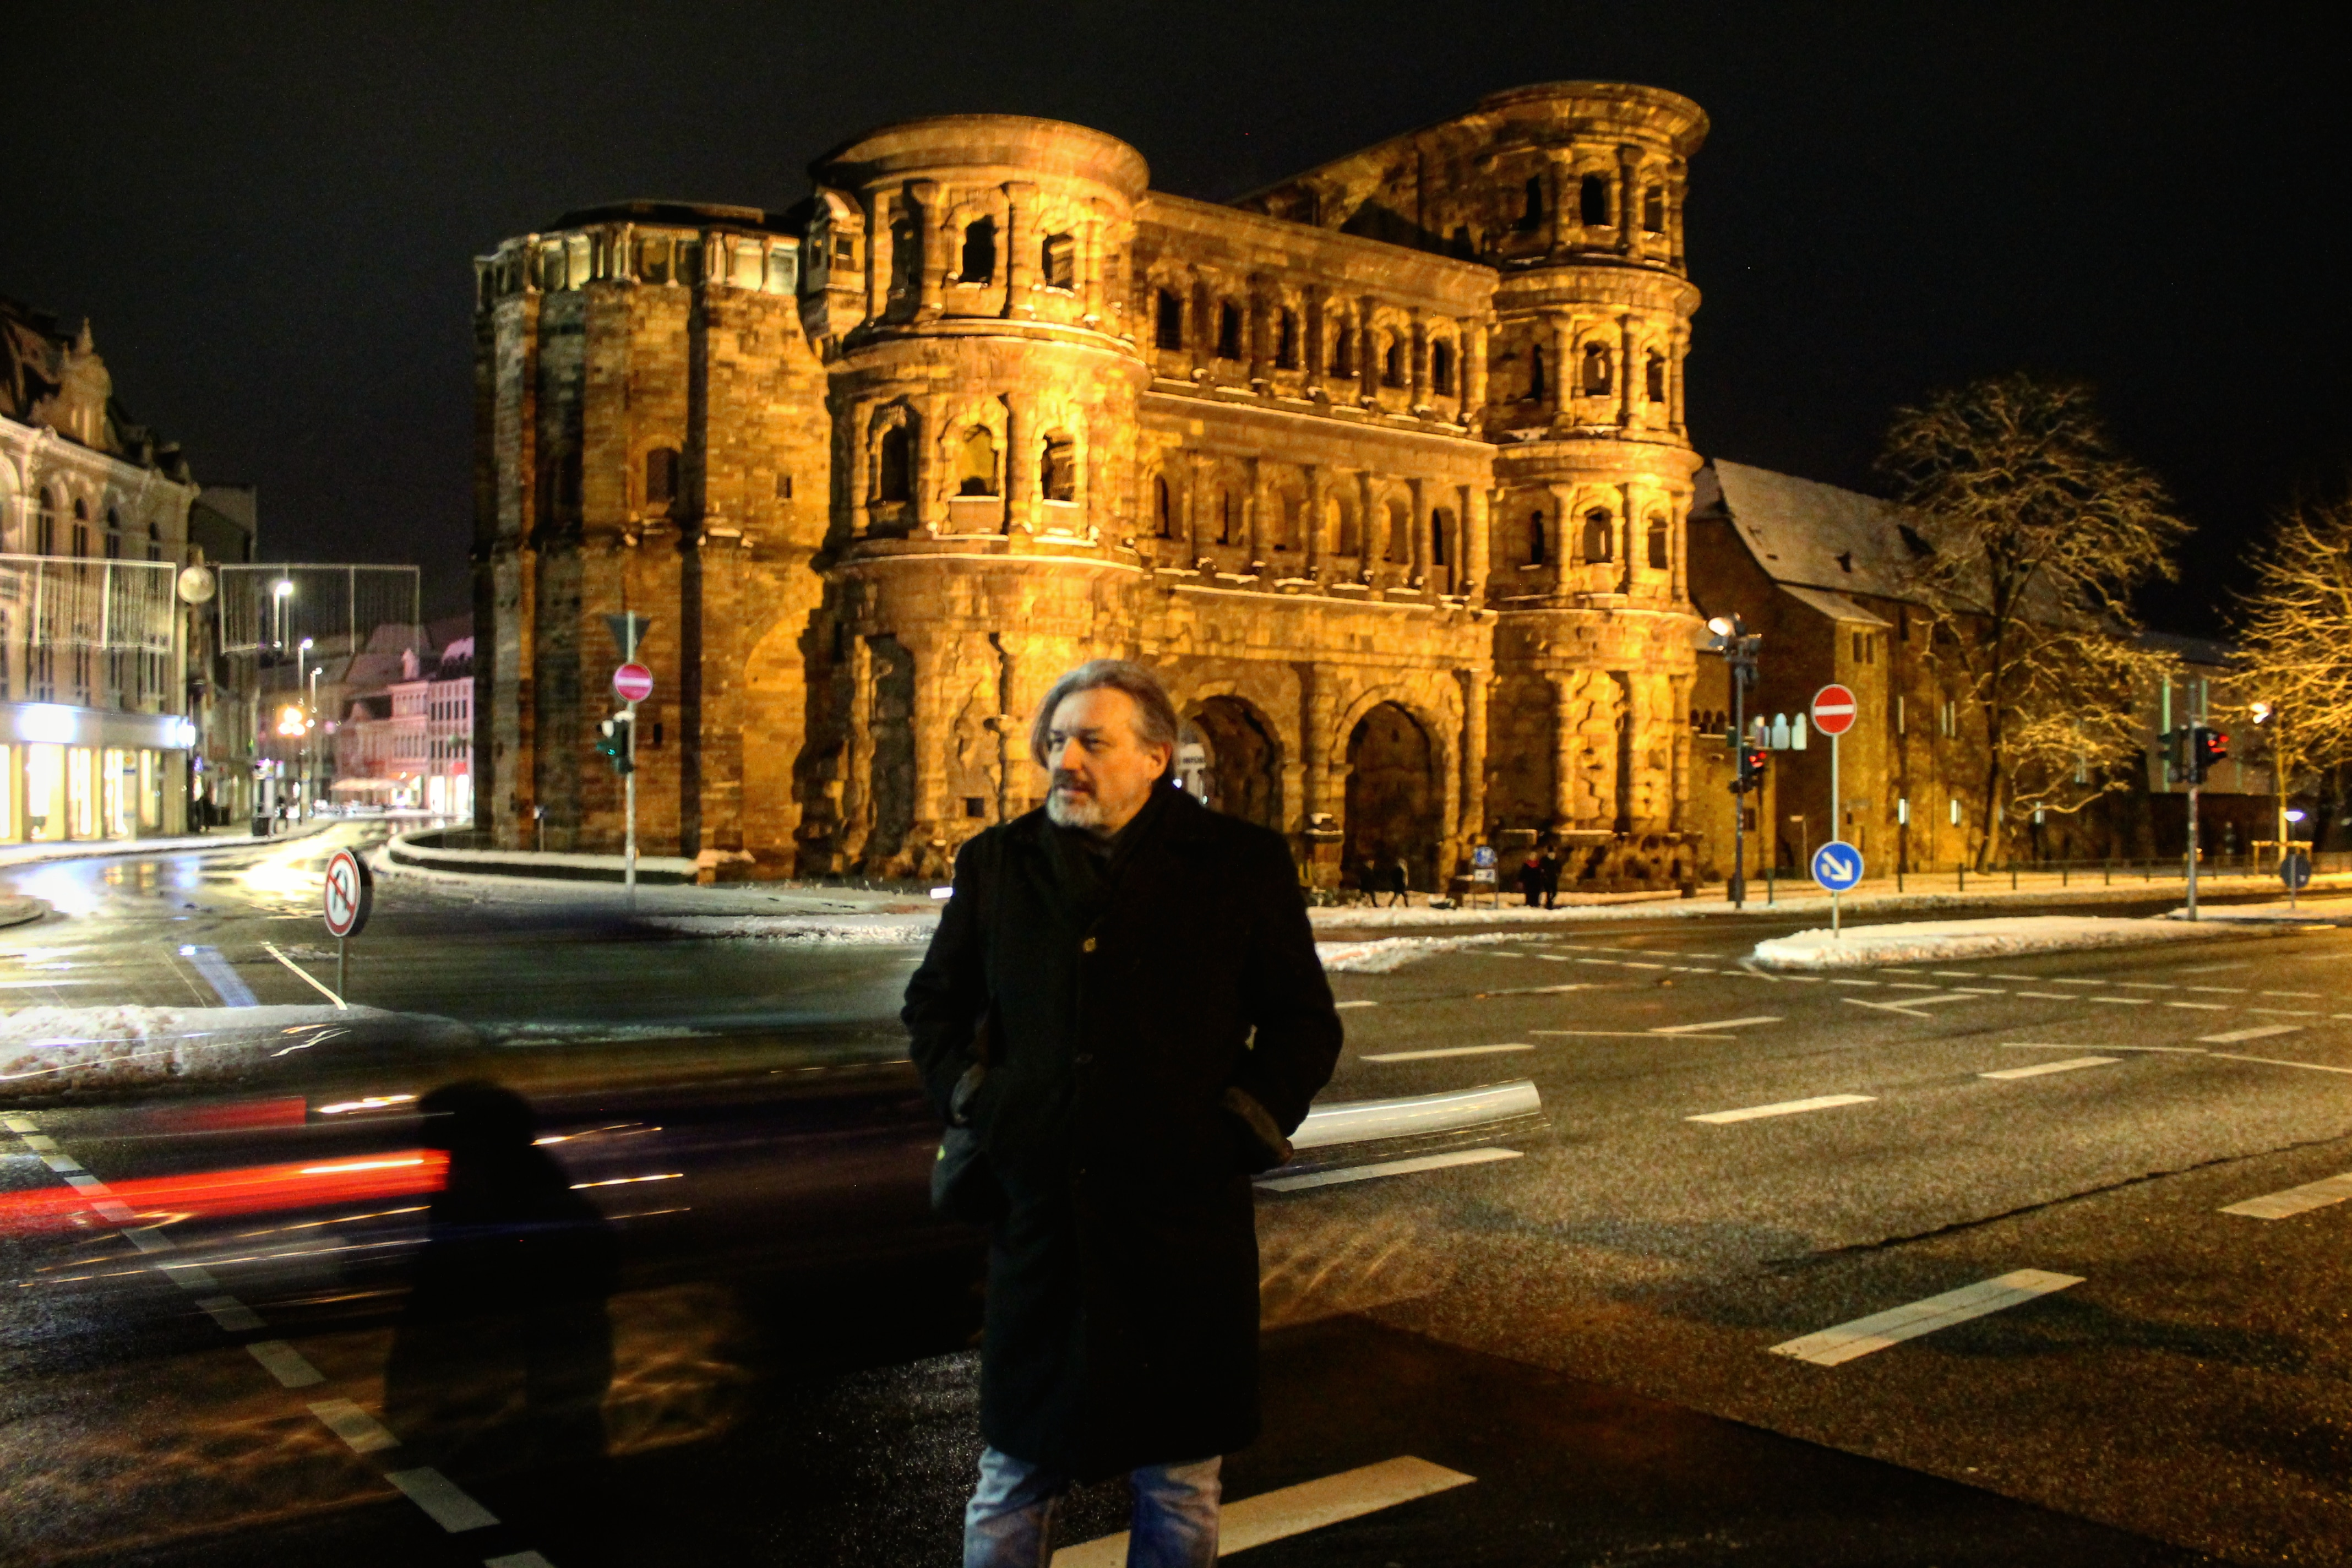 Marty Willson-Piper at the Porta Nigra in Trier, Germany (January 2019) - Photo by Olivia Willson-Piper